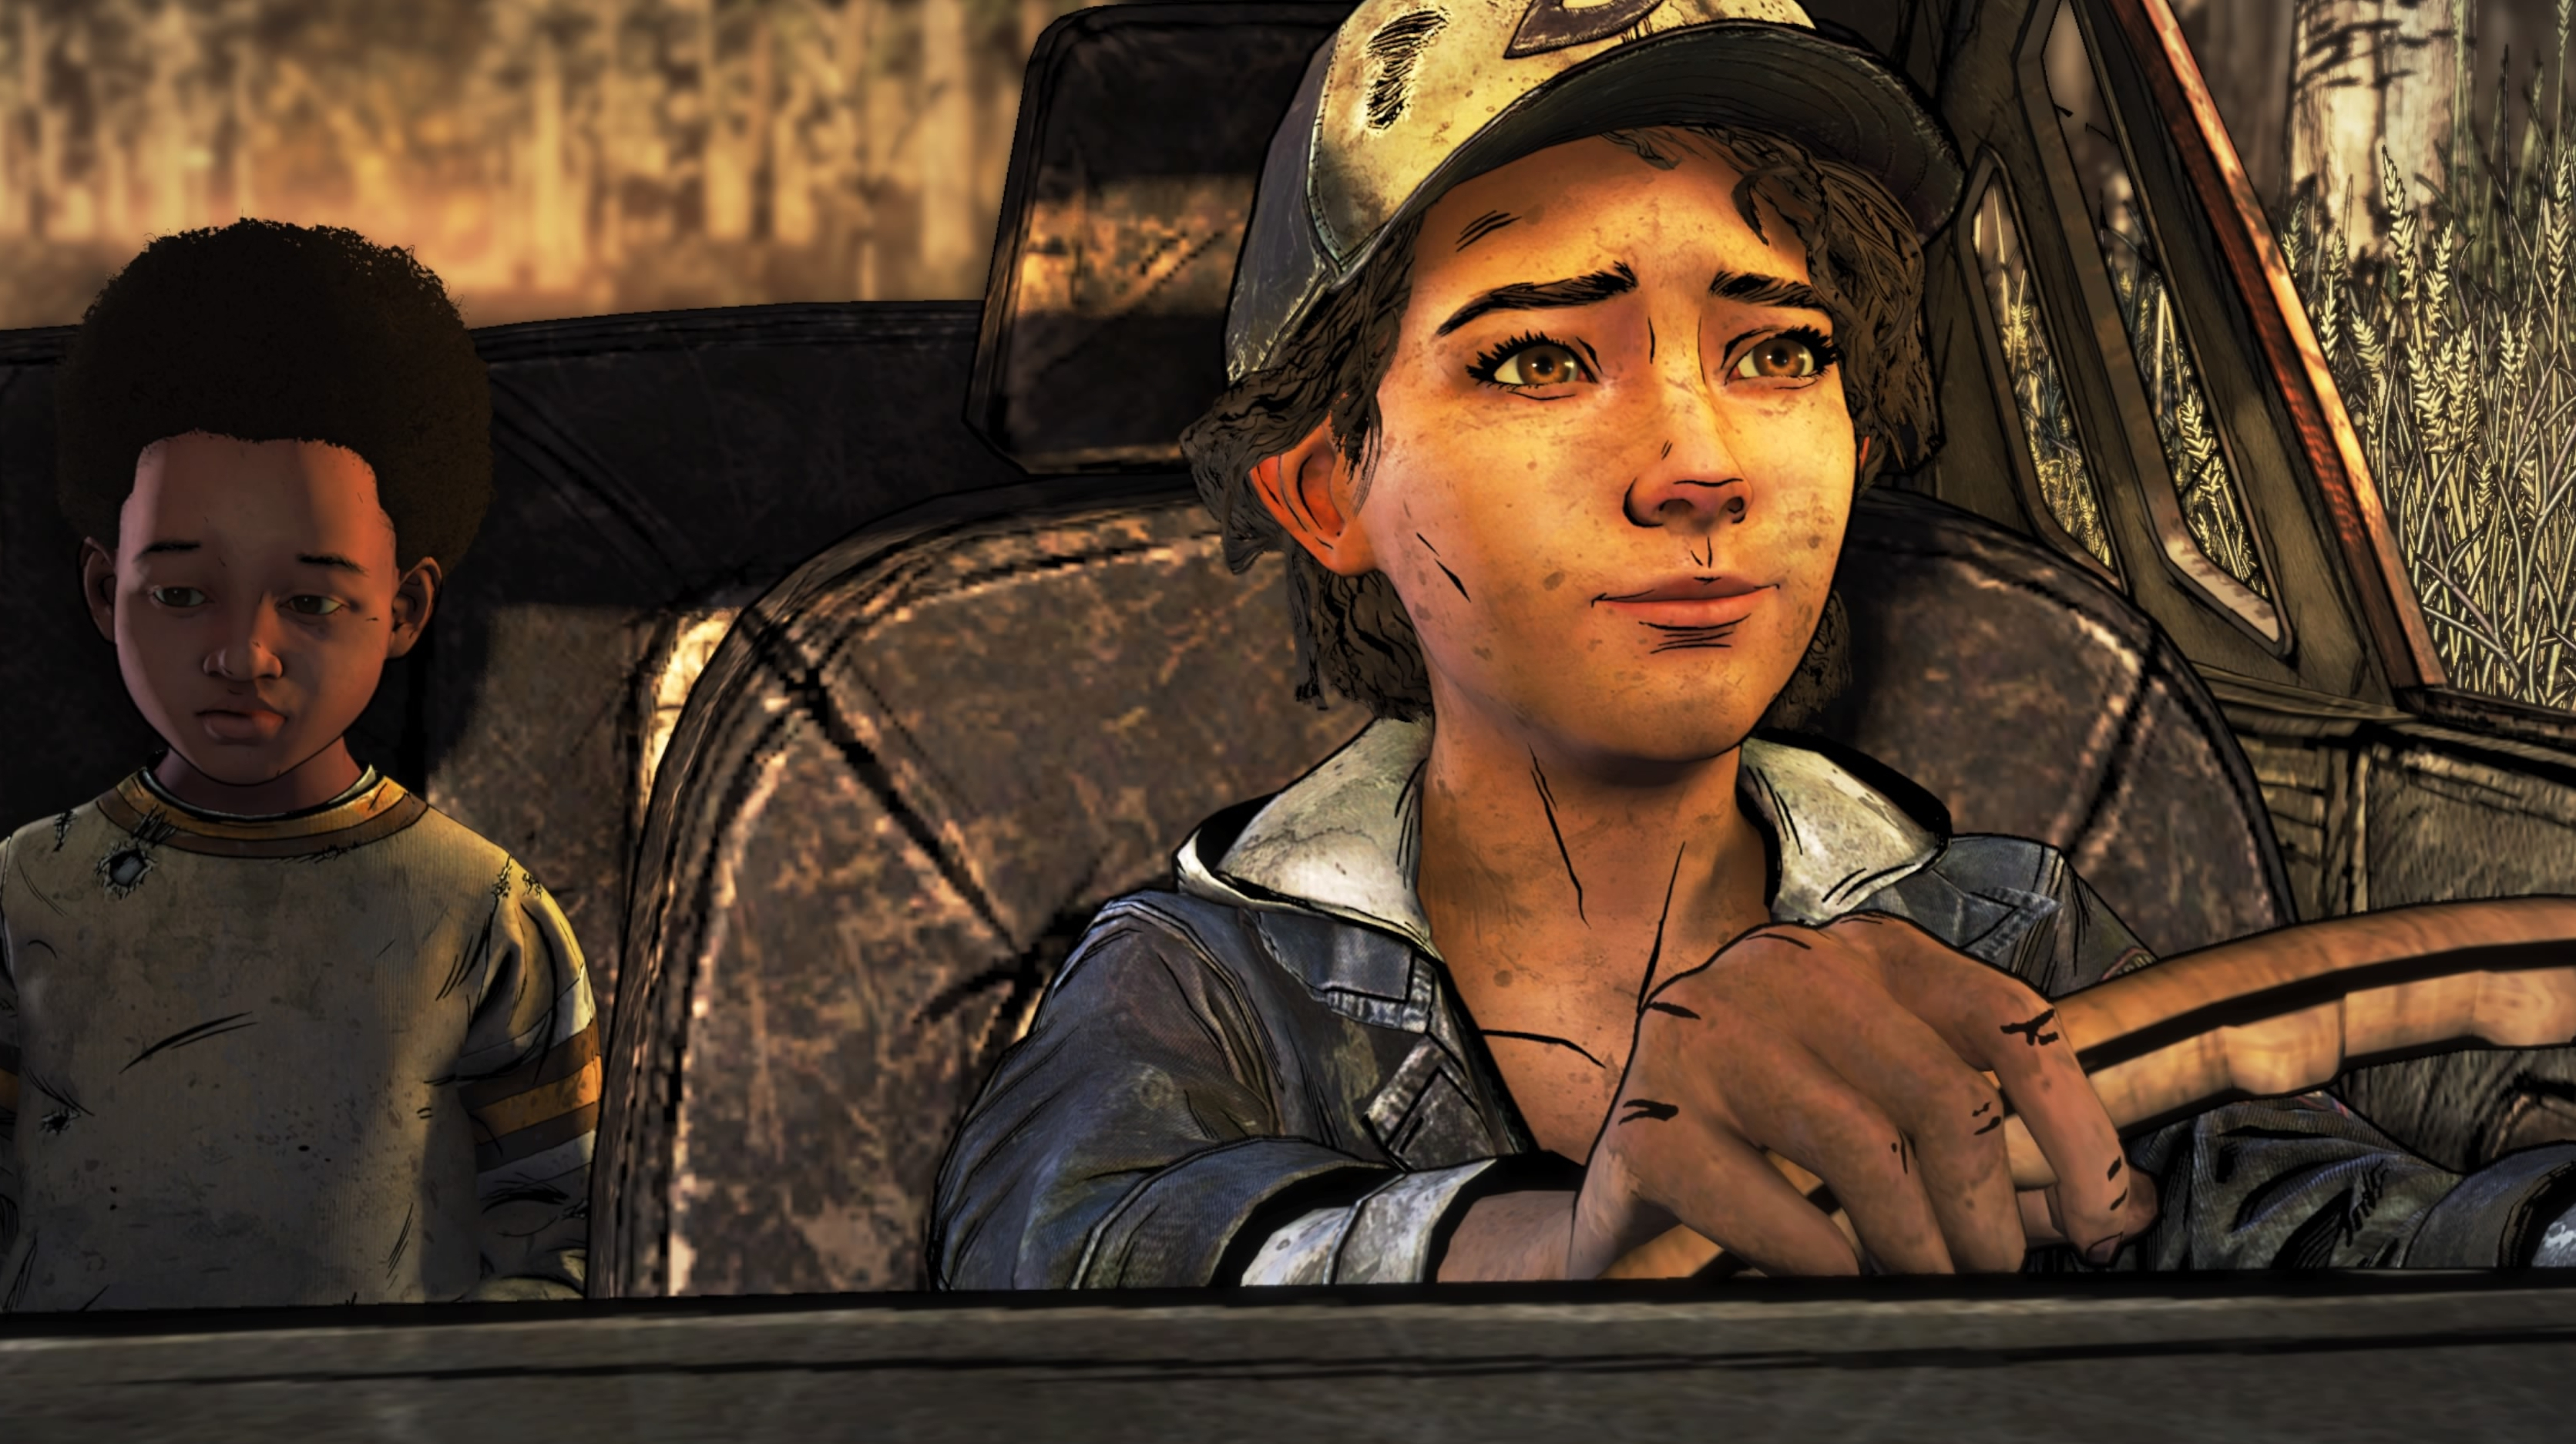 The Walking Dead Game Fanfiction Clementine - The Walking Dead